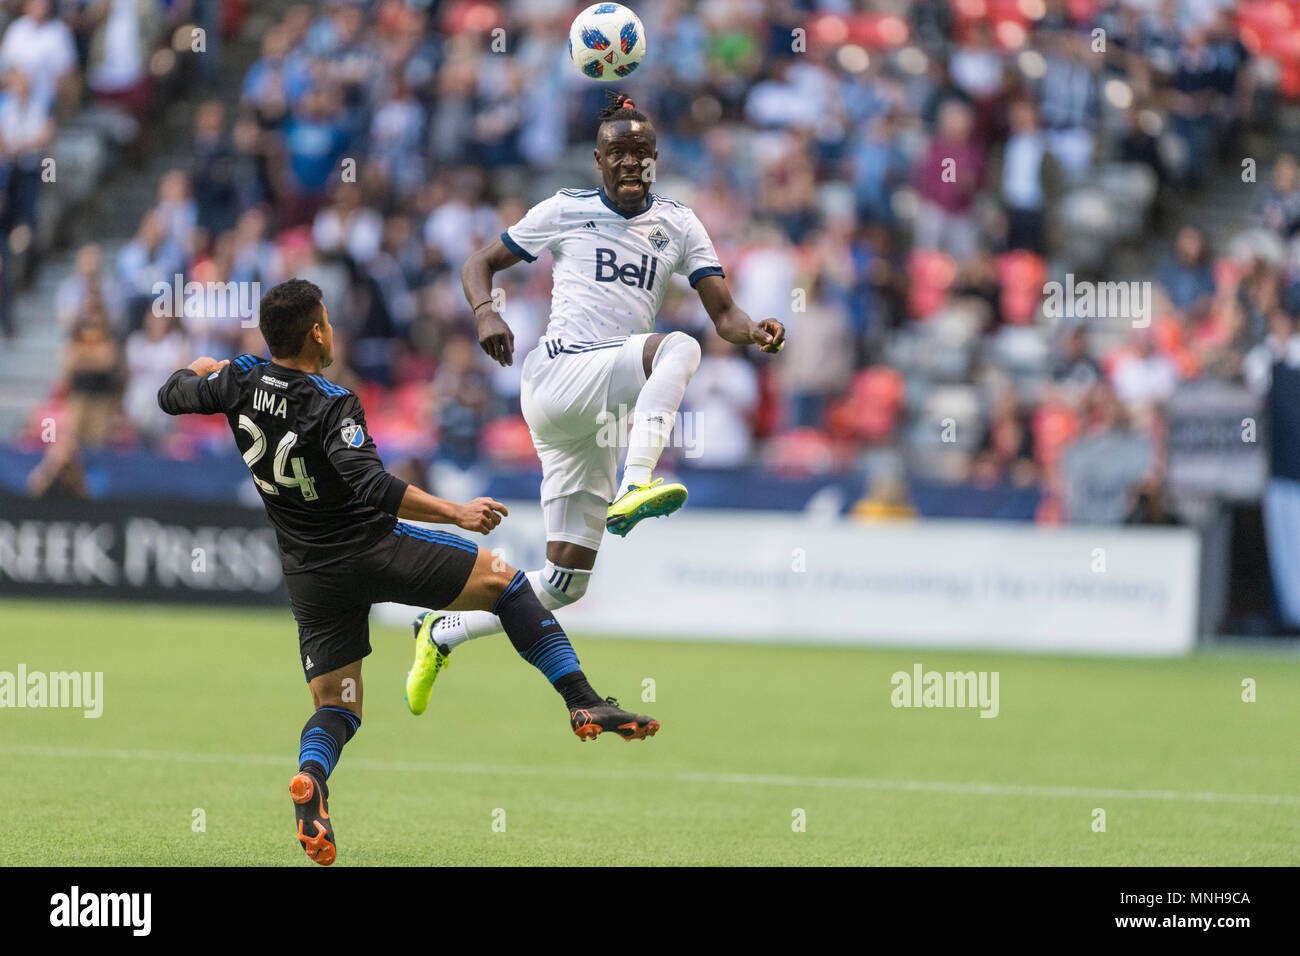 Vancouver, Canada. 16 May 2018. Kei Kamara (23) of Vancouver Whitecaps (right) and Nick Lima (24) of San Jose Earthquakes vie for the ball. Game ends with a 2-2 tie. Vancouver Whitecaps vs San Jose Earthquakes BC Place.  © Gerry Rousseau/Alamy Live News - Stock Image